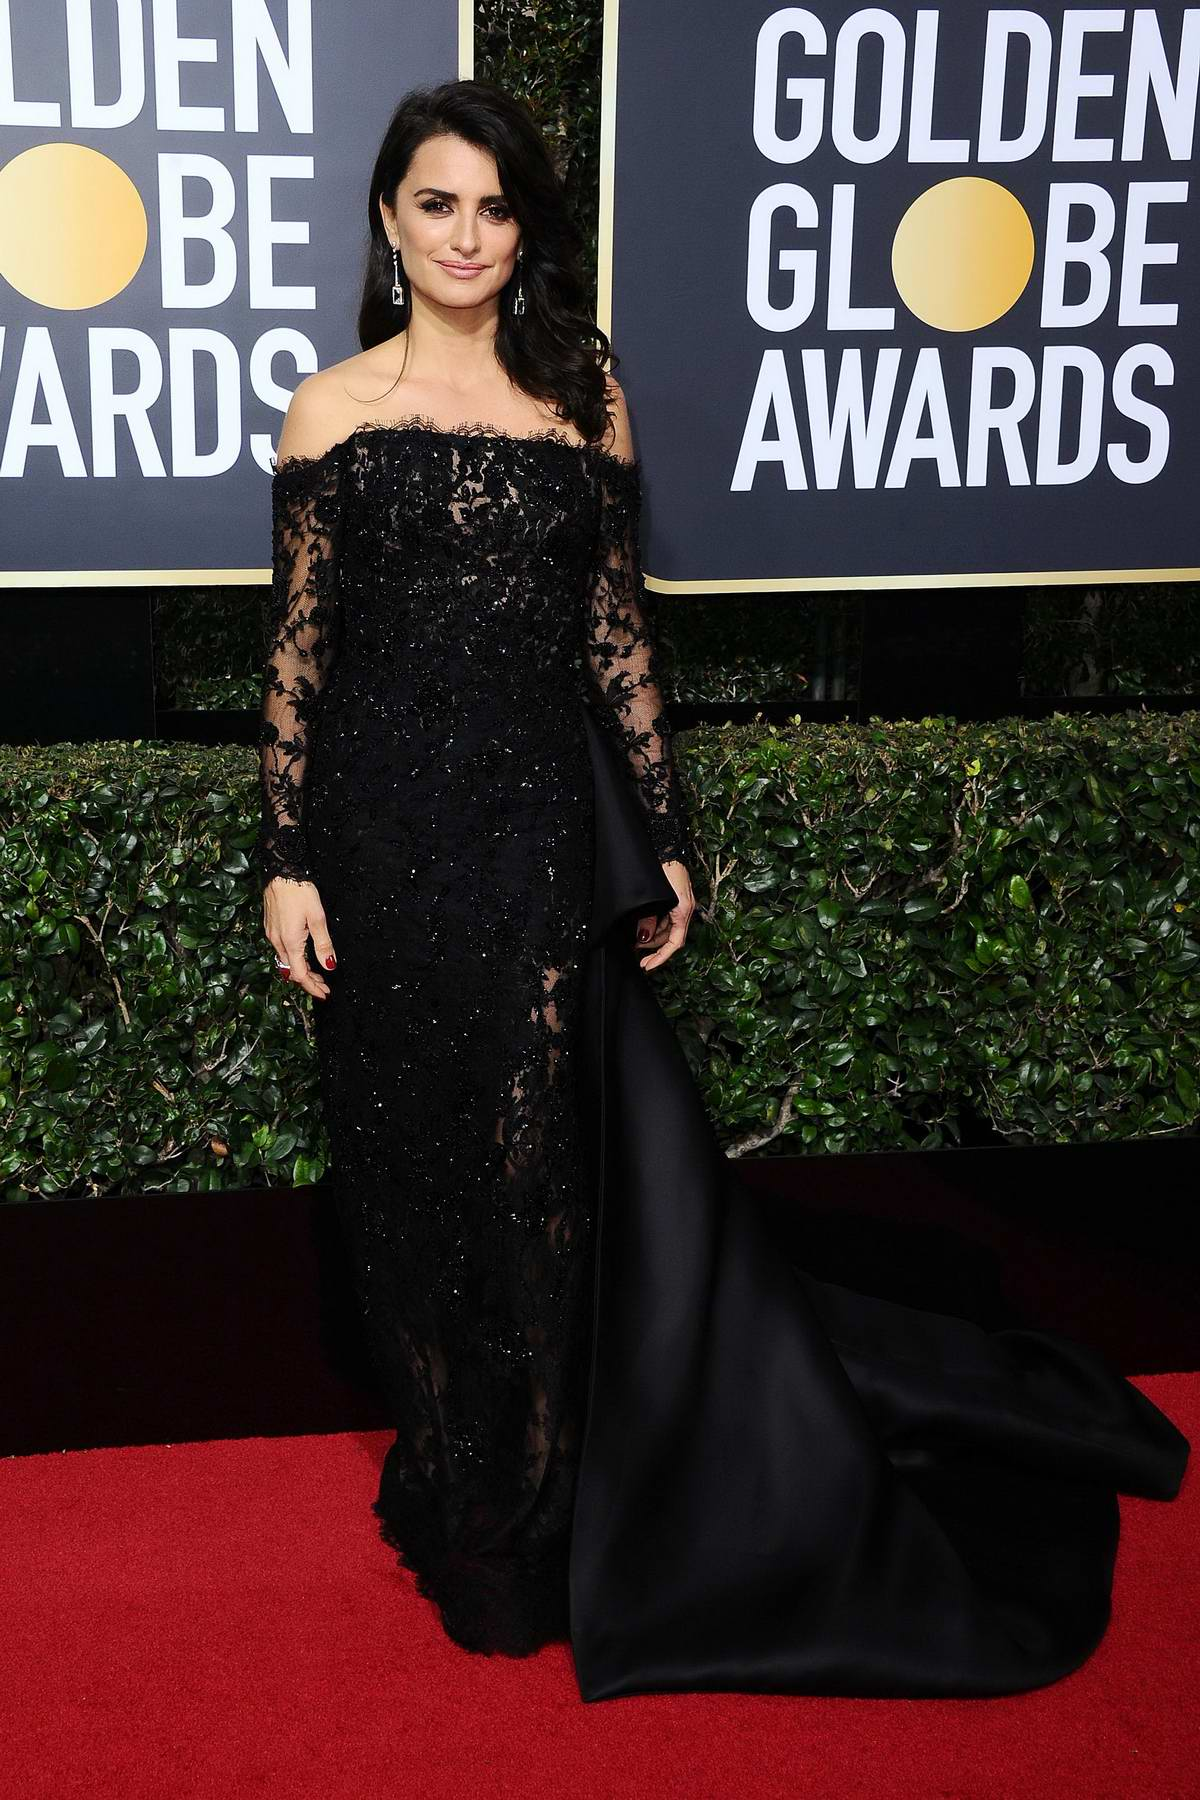 Penelope Cruz attends the 75th Annual Golden Globe Awards in Beverly Hills, Los Angeles